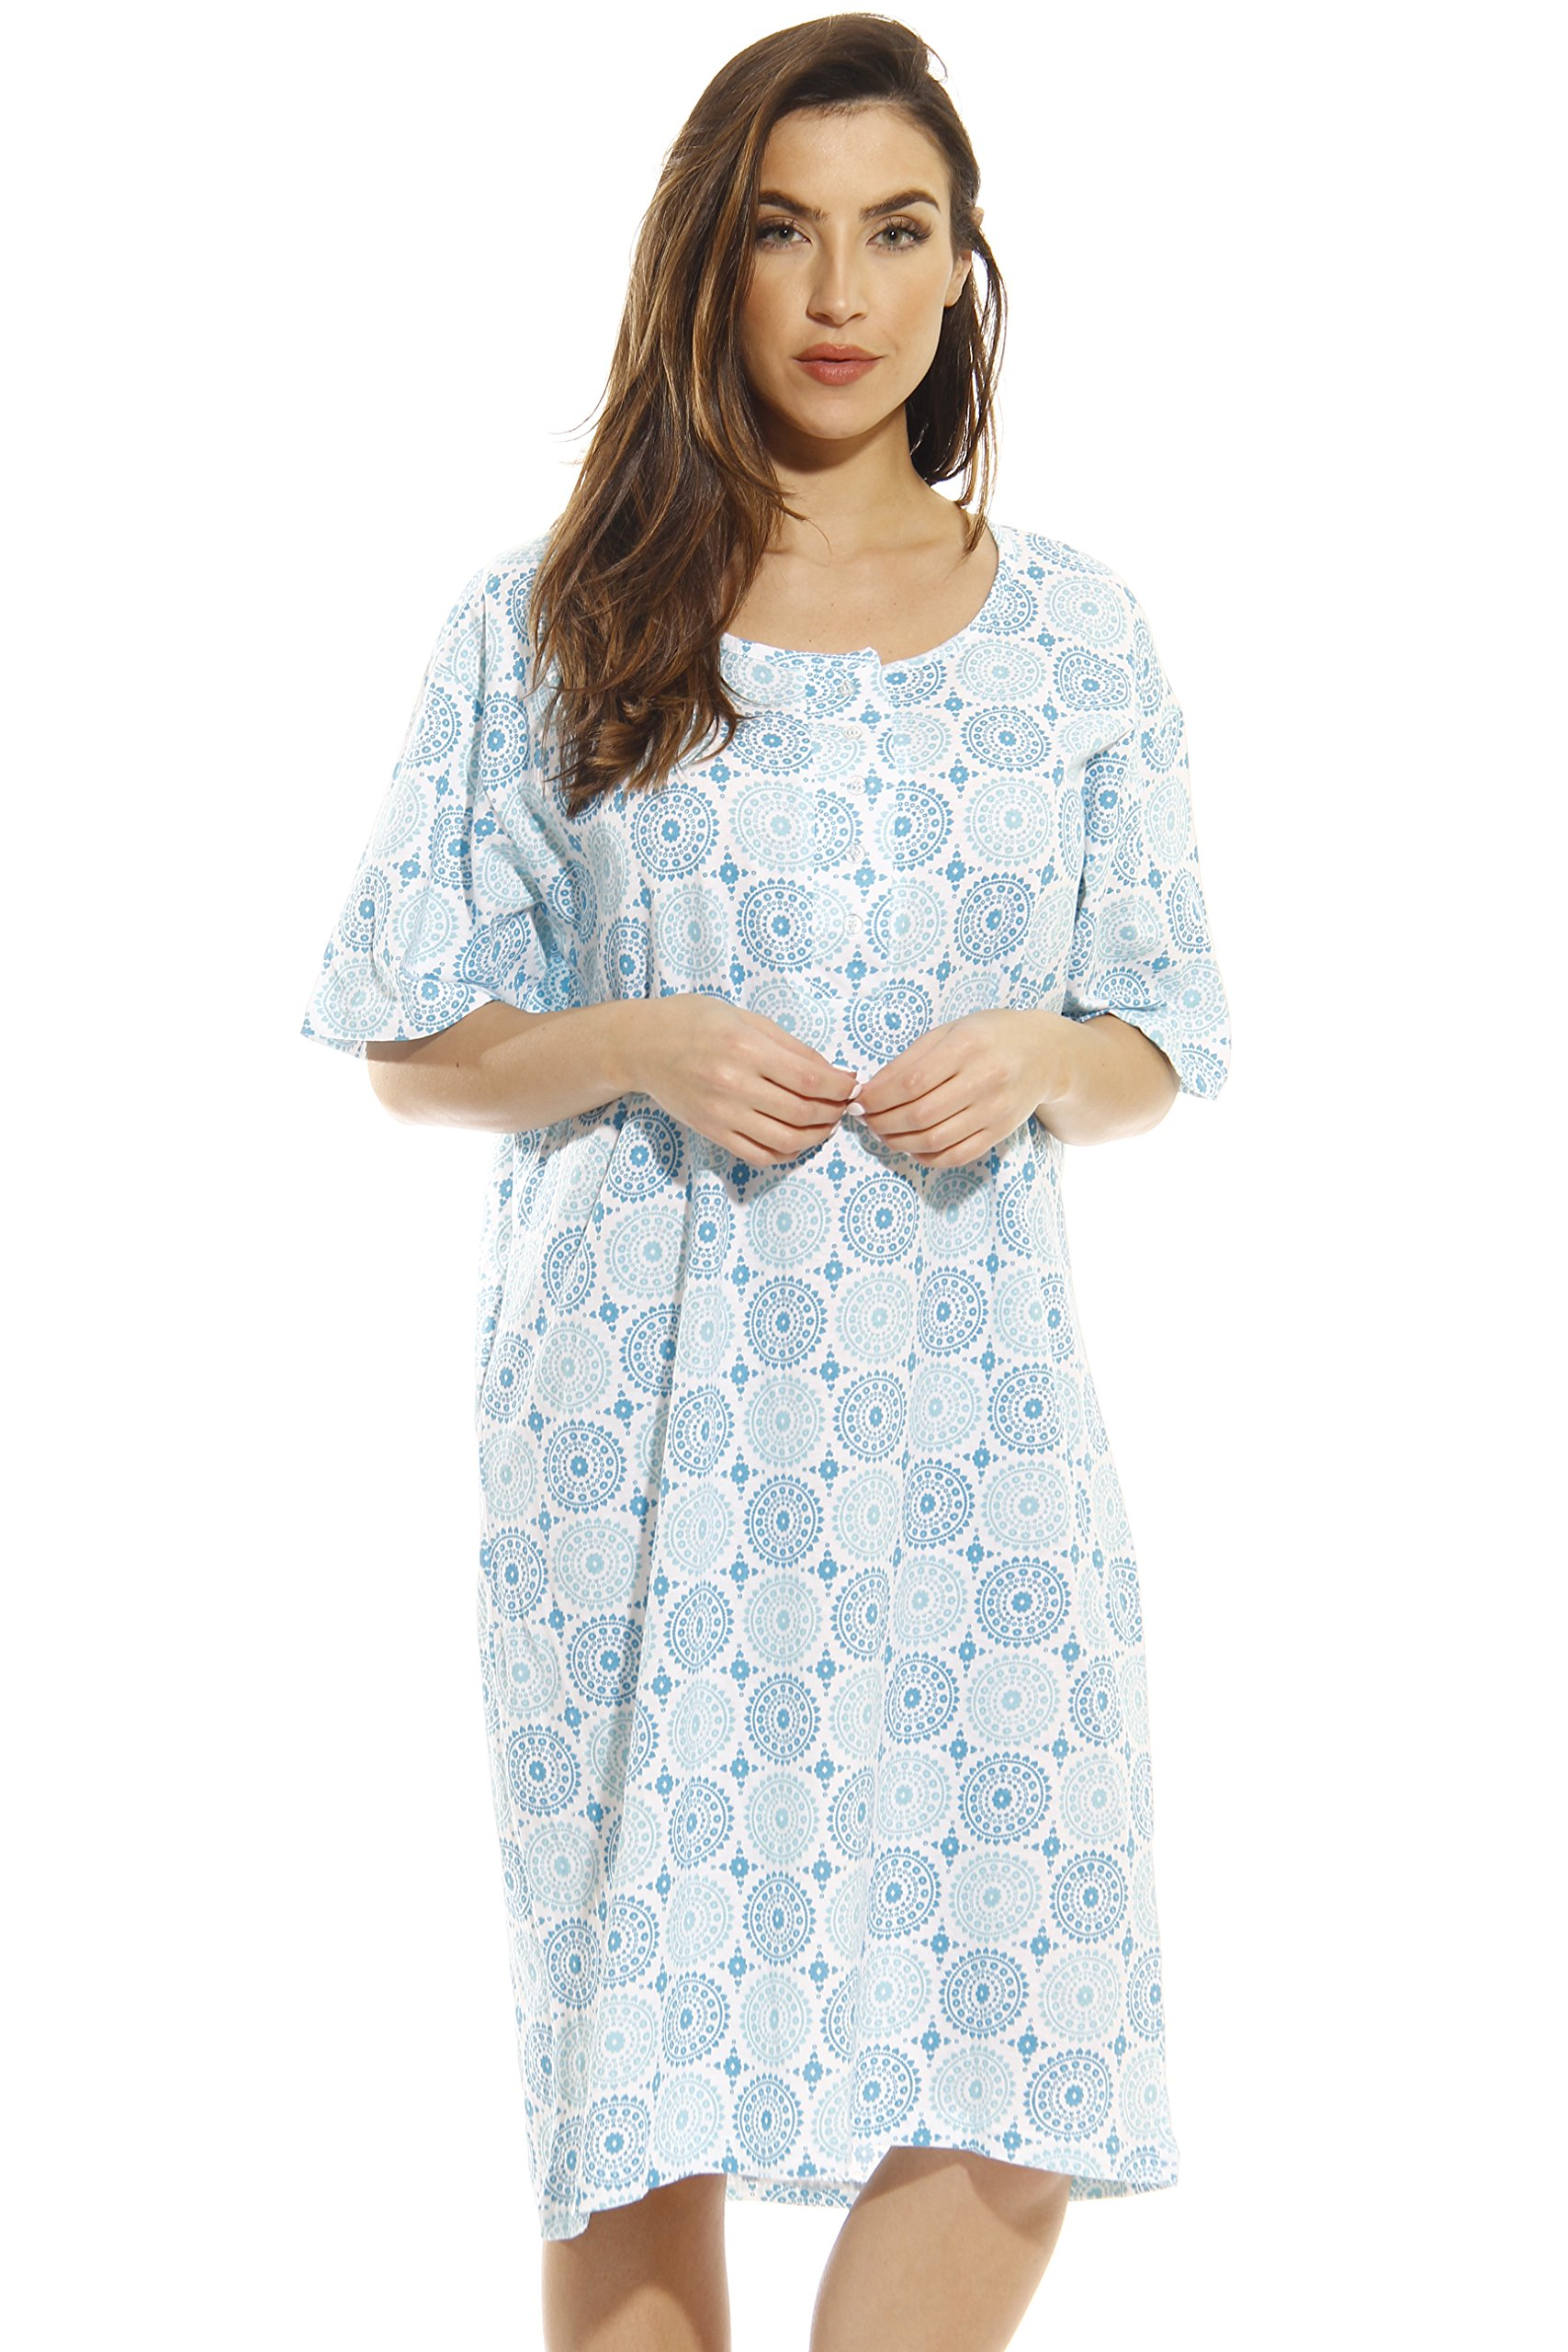 4360-O-10062-L Just Love Short Sleeve Nightgown / Sleep Dress for Women / Sleepwear